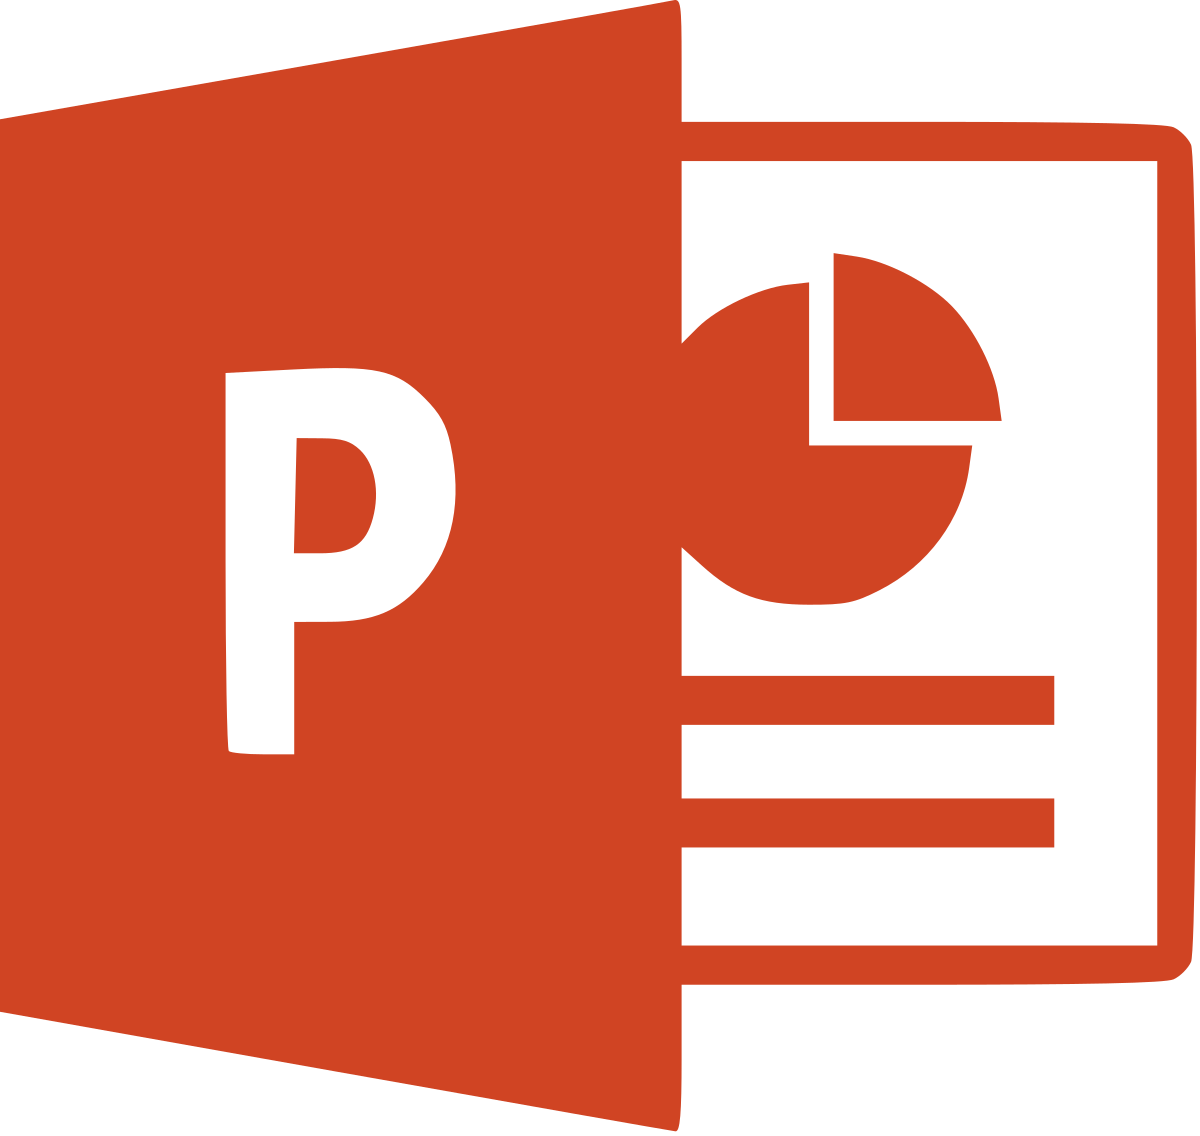 1200x1136 Office 2016 Icons. Microsoft Office Product Logos. Microsoft Edge